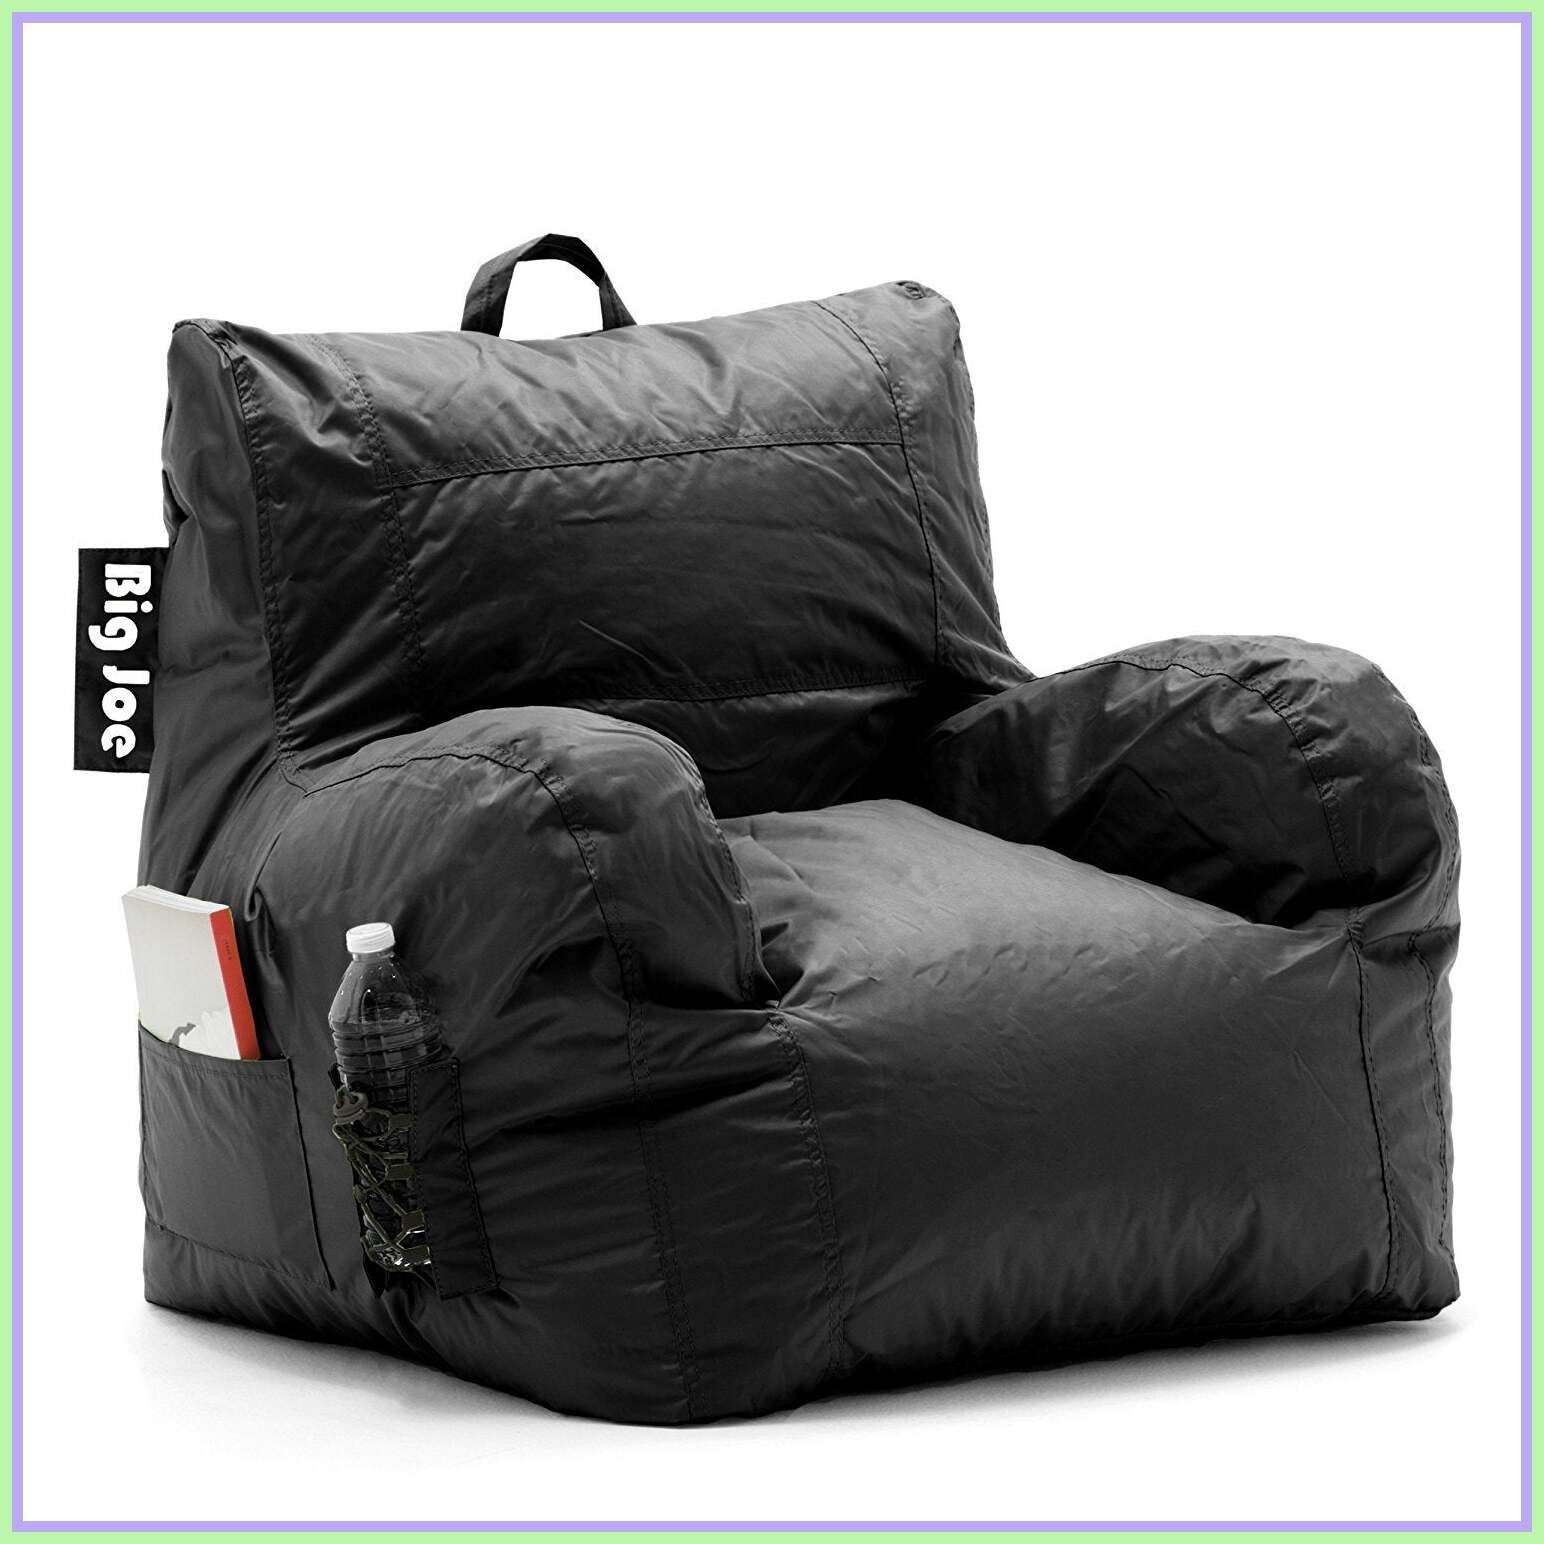 60 Reference Of Bean Bag Gaming Chair Uk In 2020 Bean Bag Chair Kids Bean Bag Gaming Chair Bean Bag Chair